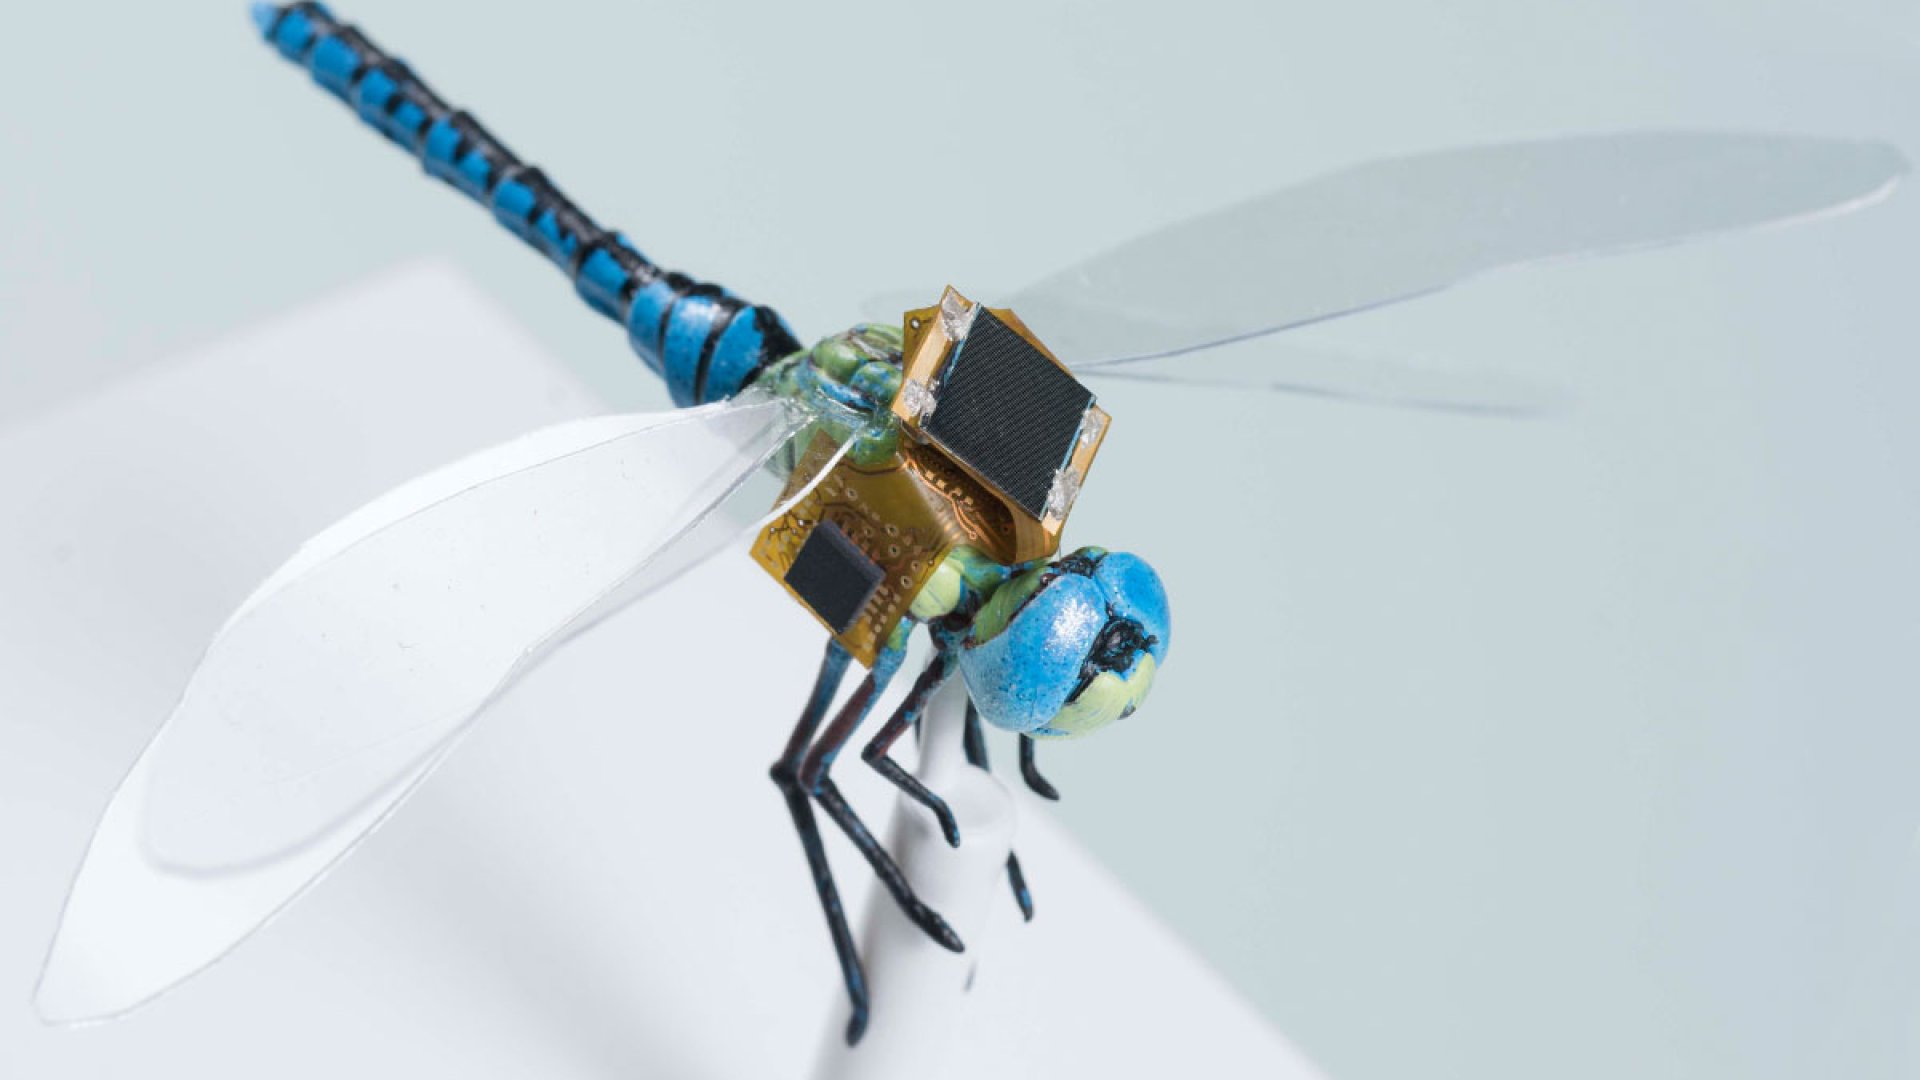 The Future of Drone Technology Lies in These Genetically Modified Dragonflies